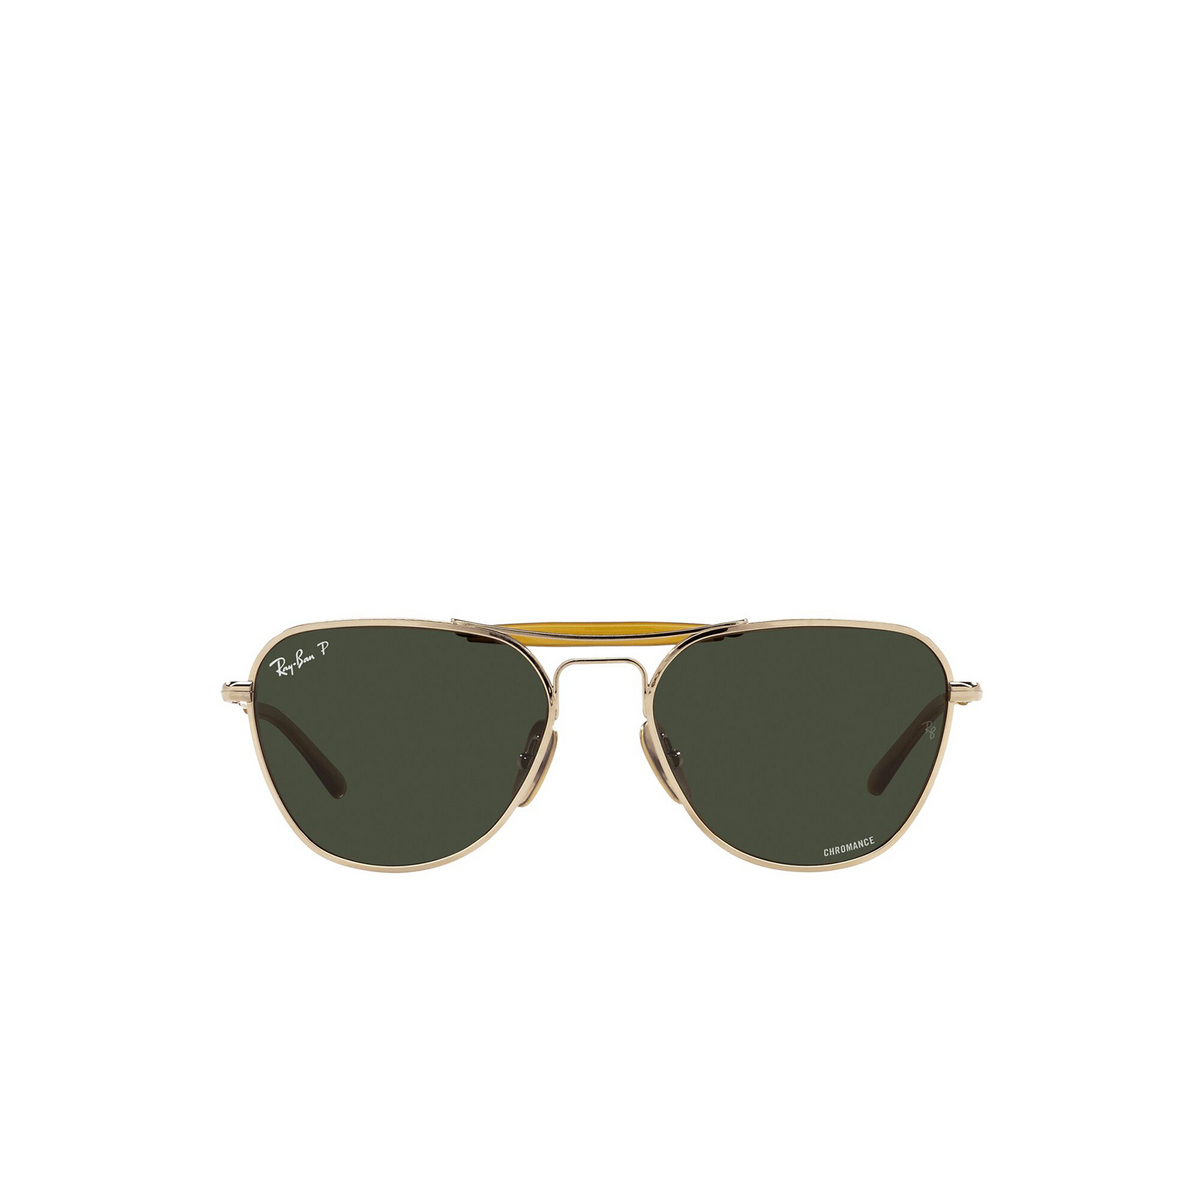 Ray-Ban® Irregular Sunglasses: RB8064 color Arista 9205P1 - front view.